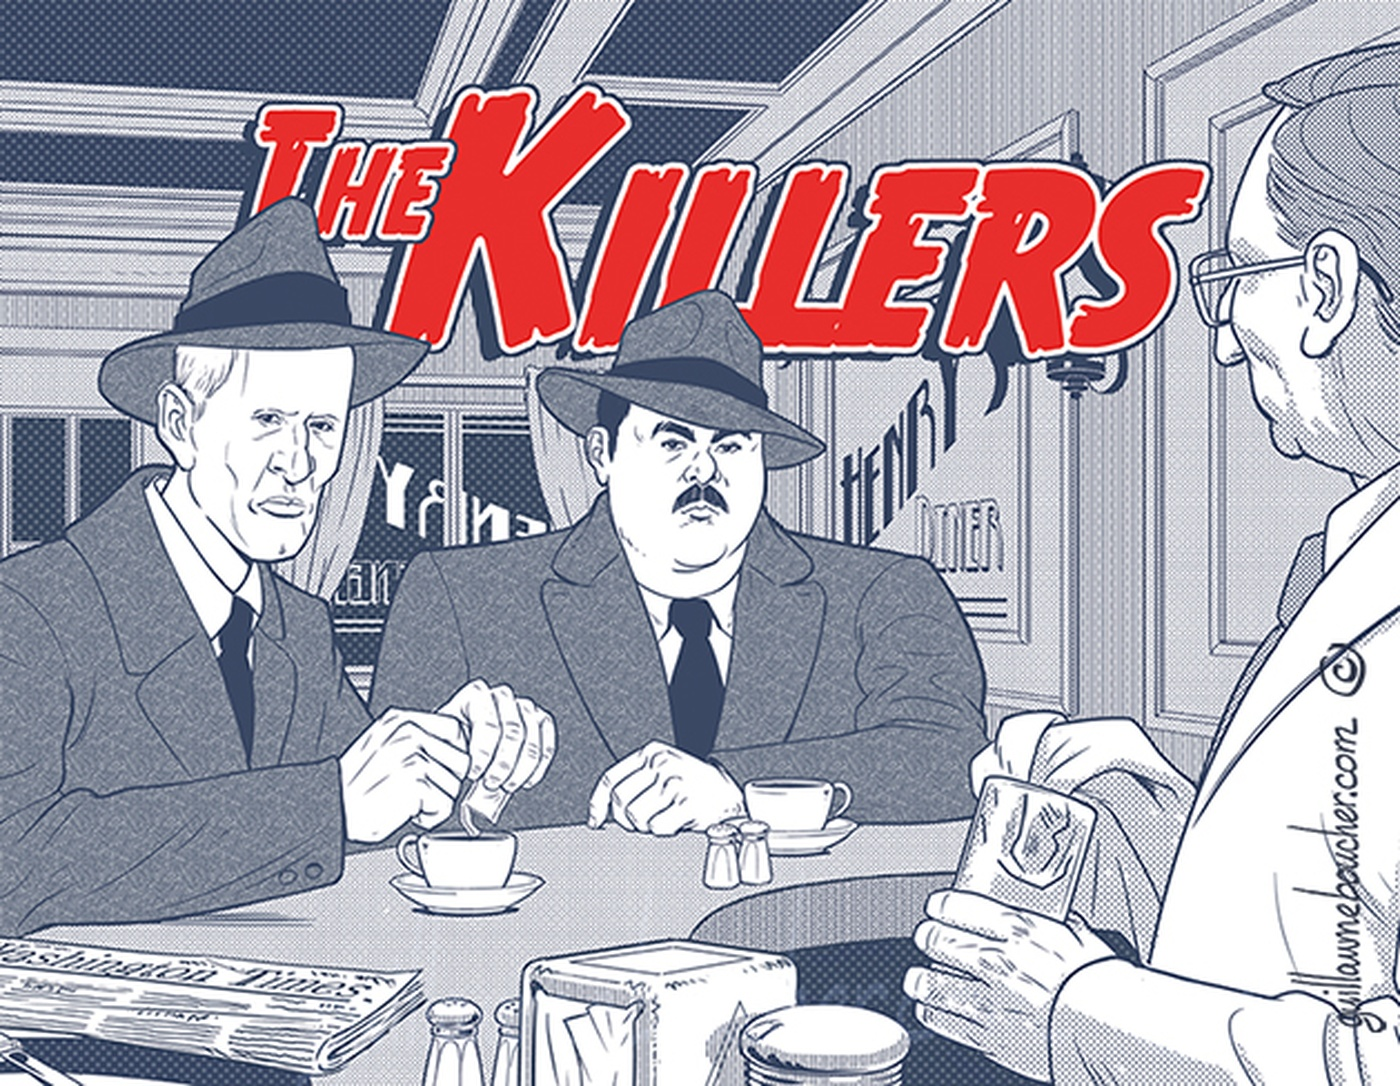 Guillaume Boucher - guillaume_boucher_the_killers_sml